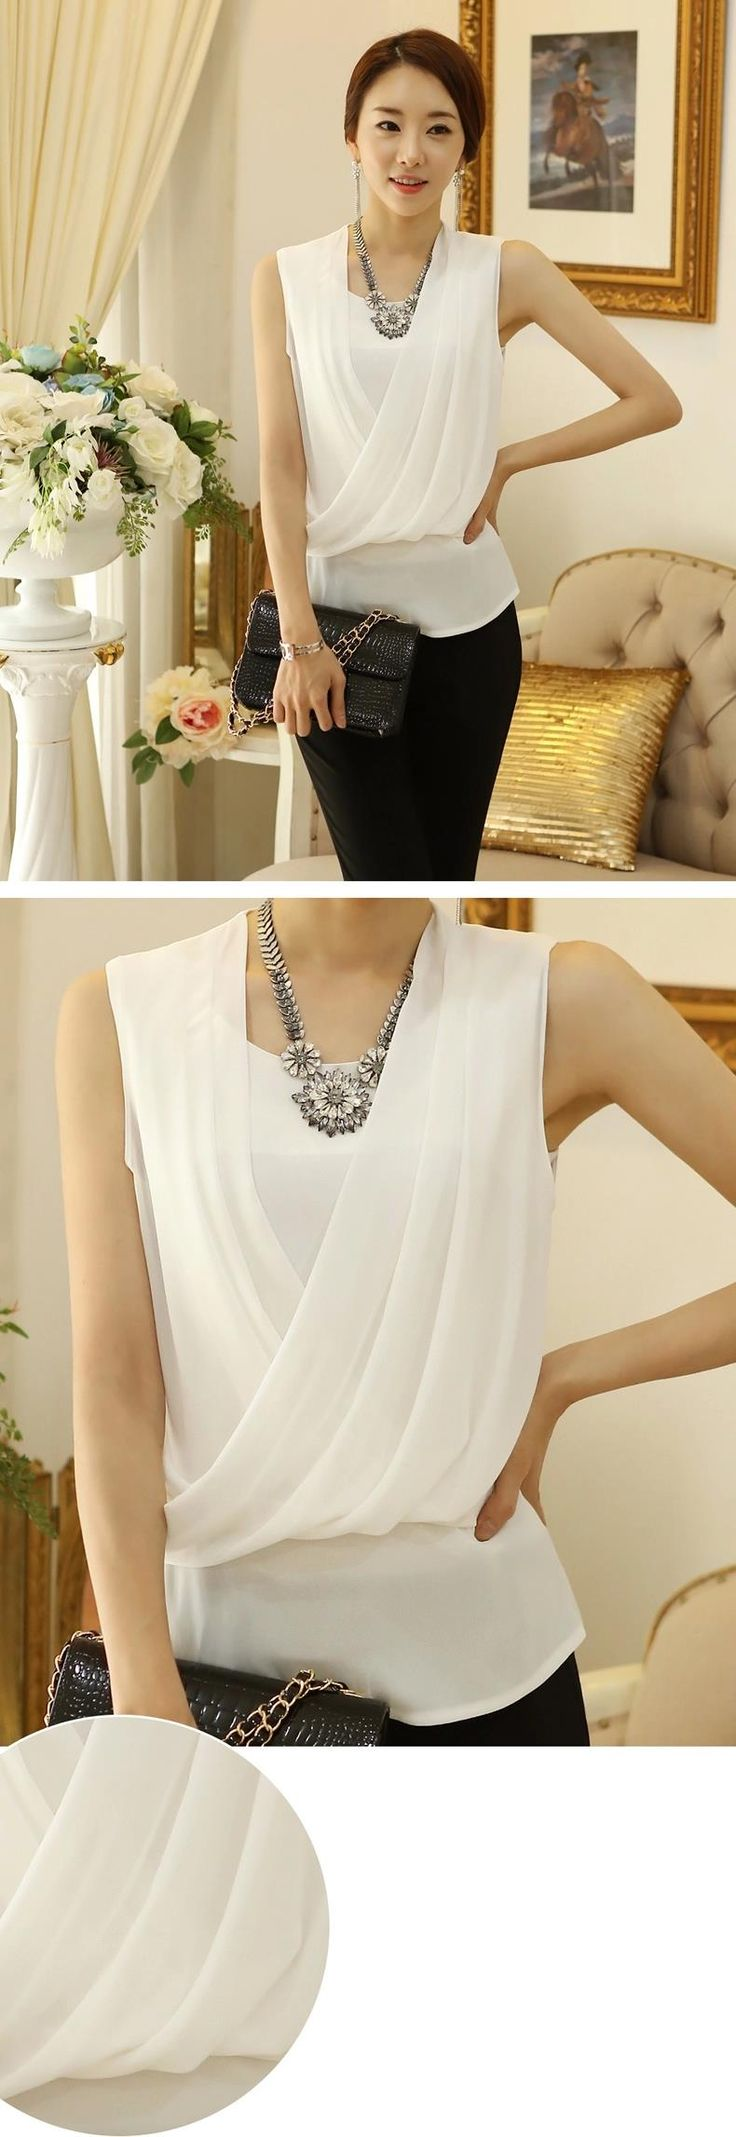 Aliexpress.com : Buy Sleeveless Feminine Blouse Chiffon Shirts Femininas Pleated Women Blouses Slim Female Shirt Elegant White Tops Chiffon Blouse from Reliable blouse dress suppliers on ceko | Alibaba Group